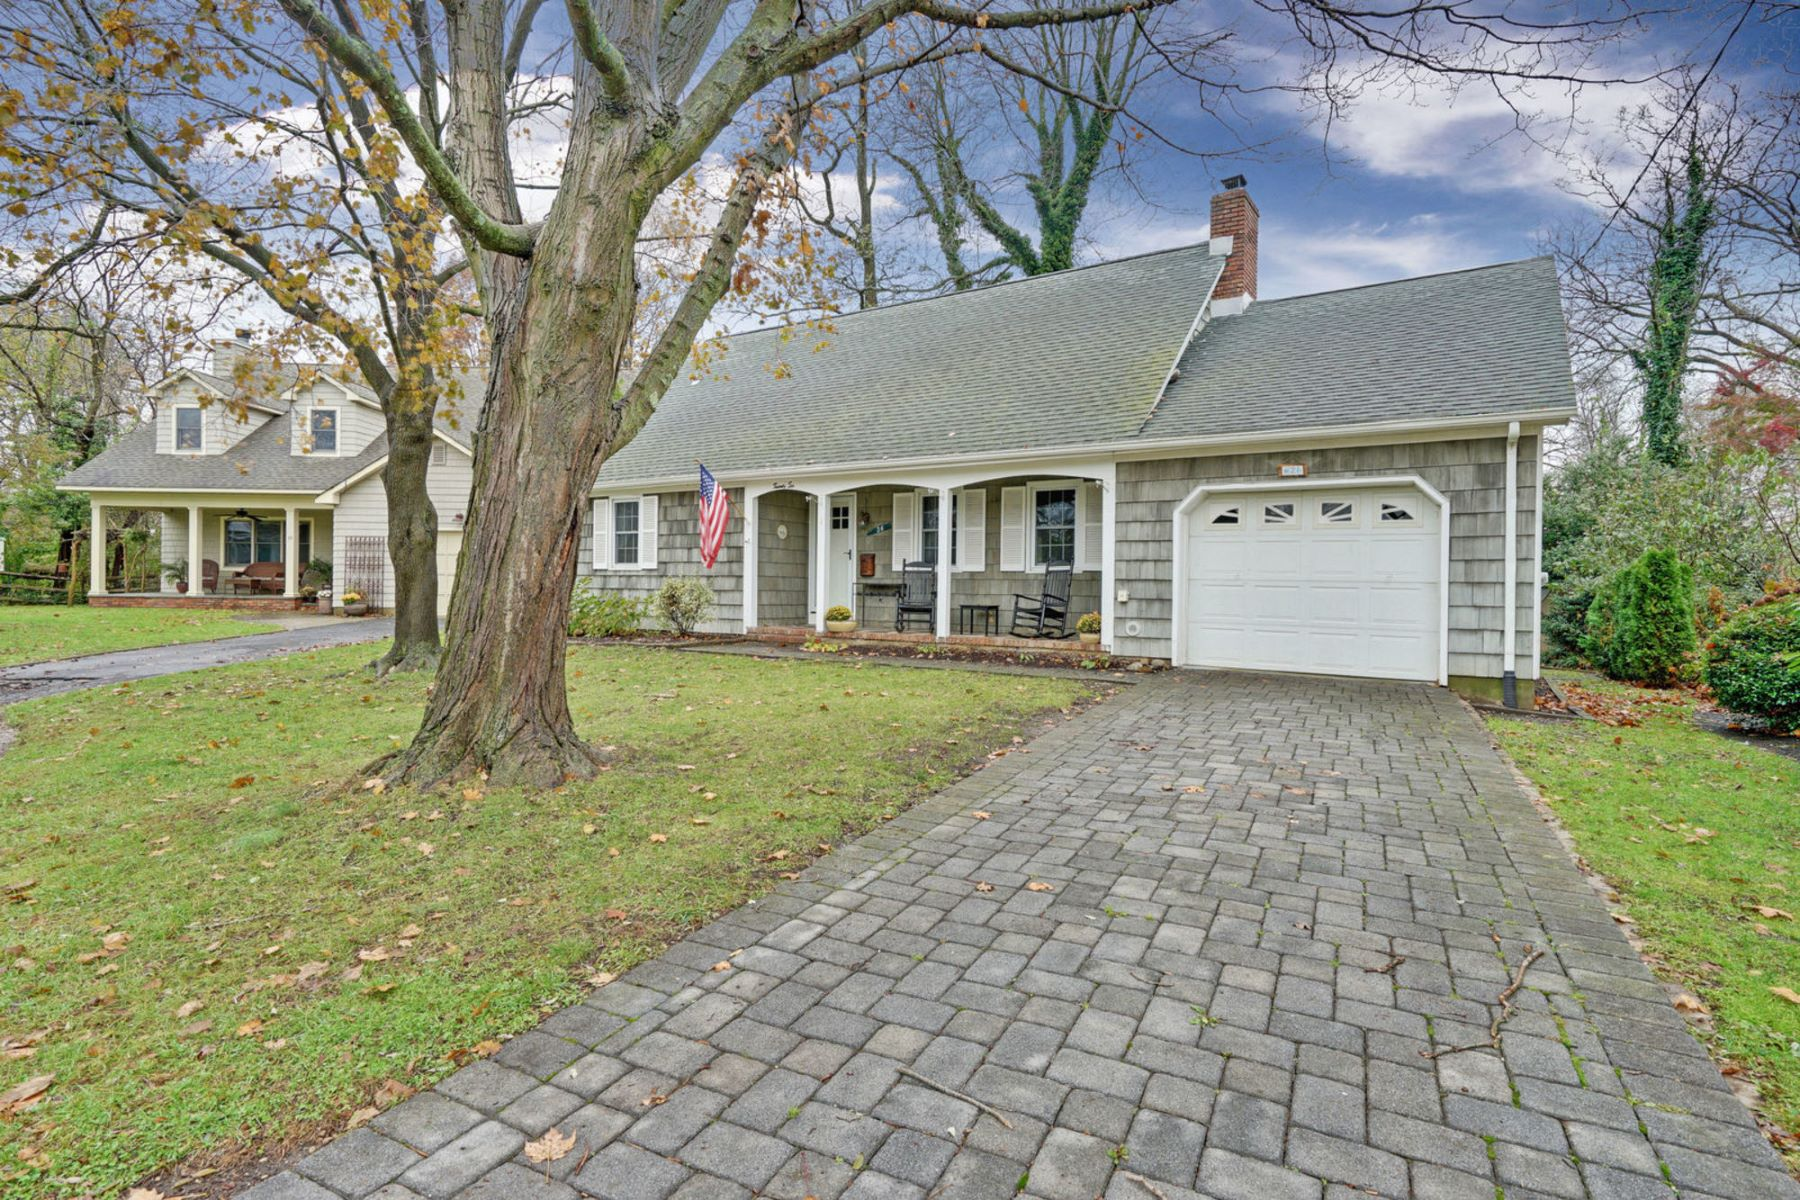 Single Family Home for Sale at Prime Location 26 Beams Terrace, Manasquan, New Jersey 08736 United States